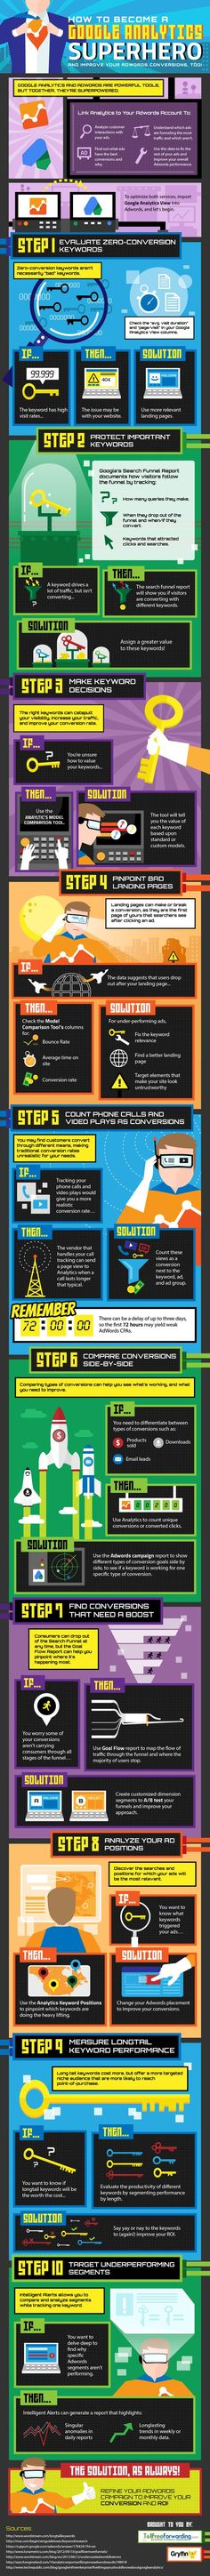 How To Become A #Google #Analytics Superhero and Improve Your #Adwords Conversion, Too #infographic: